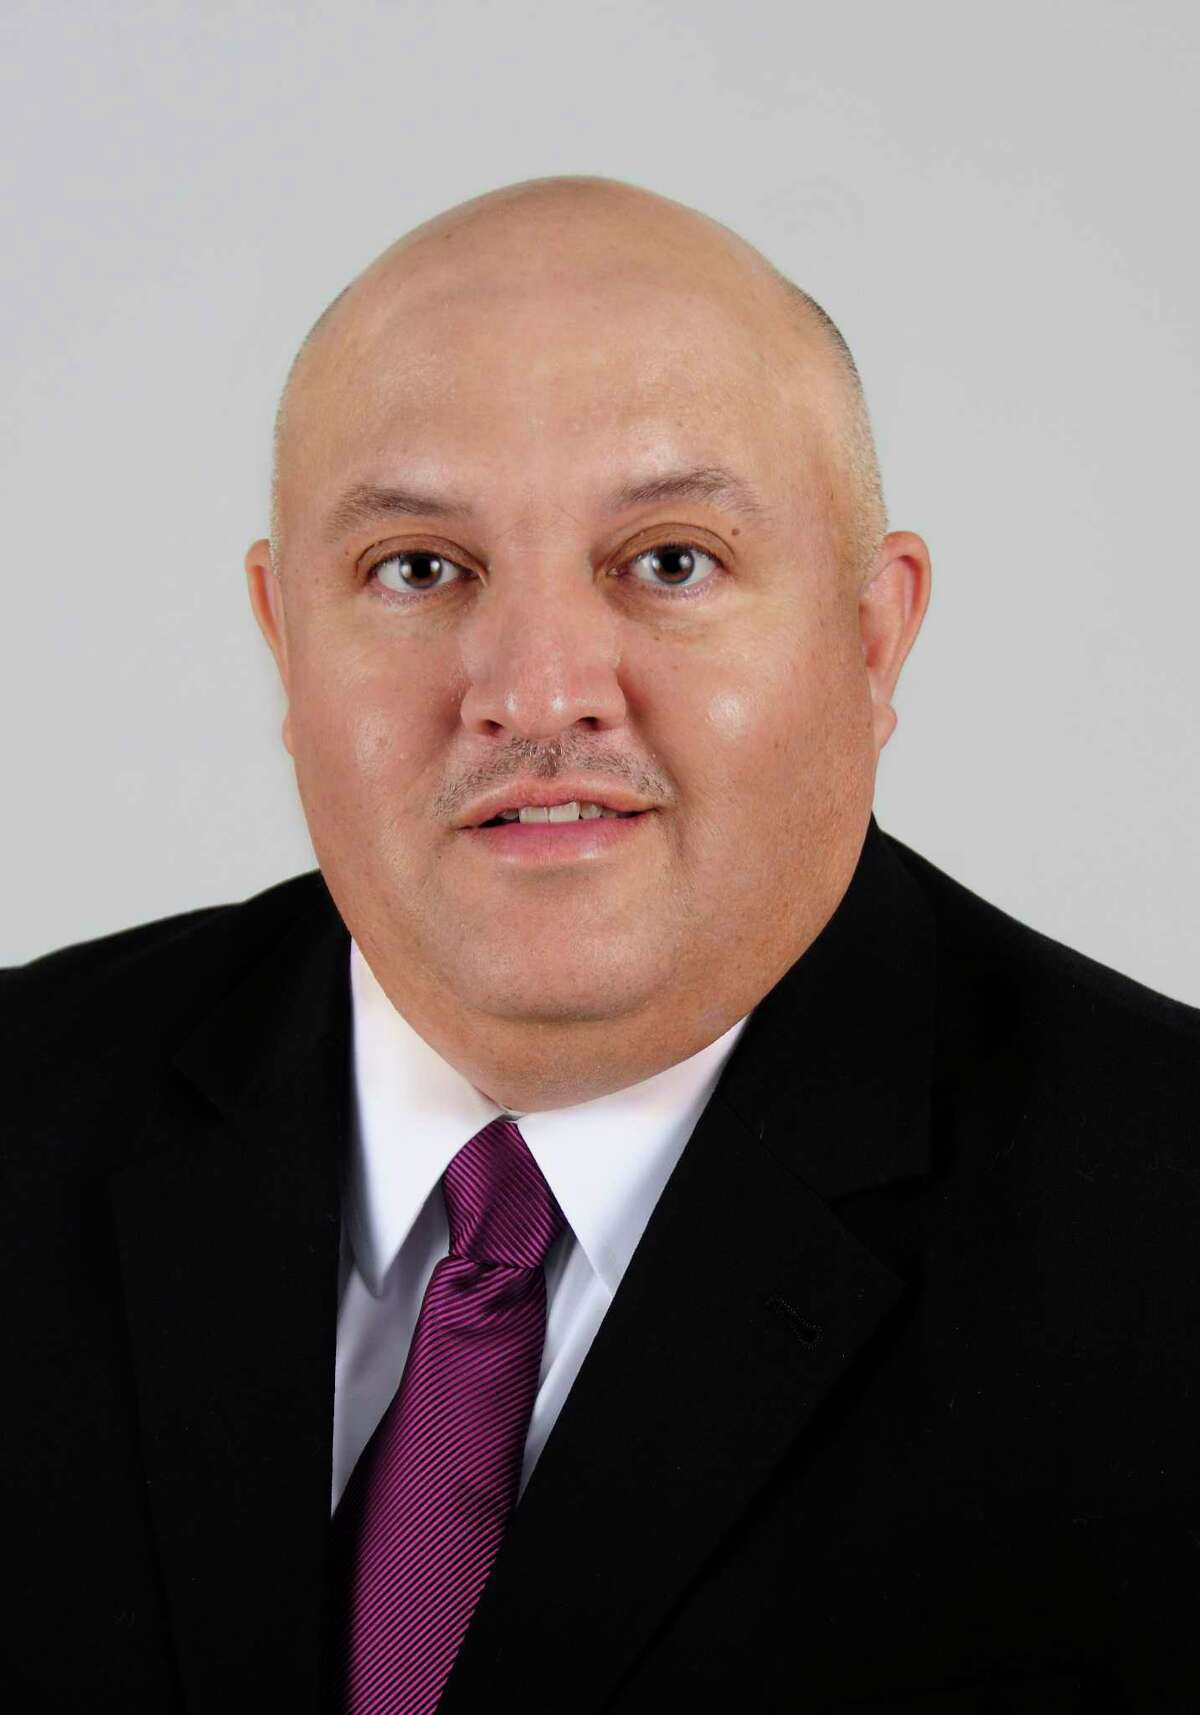 9. Jesus Saenz, Jr. - Chief Operating Officer of the Houston Airport System. Bi-weekly pay: $7,580 Estimated annual salary: $197,080